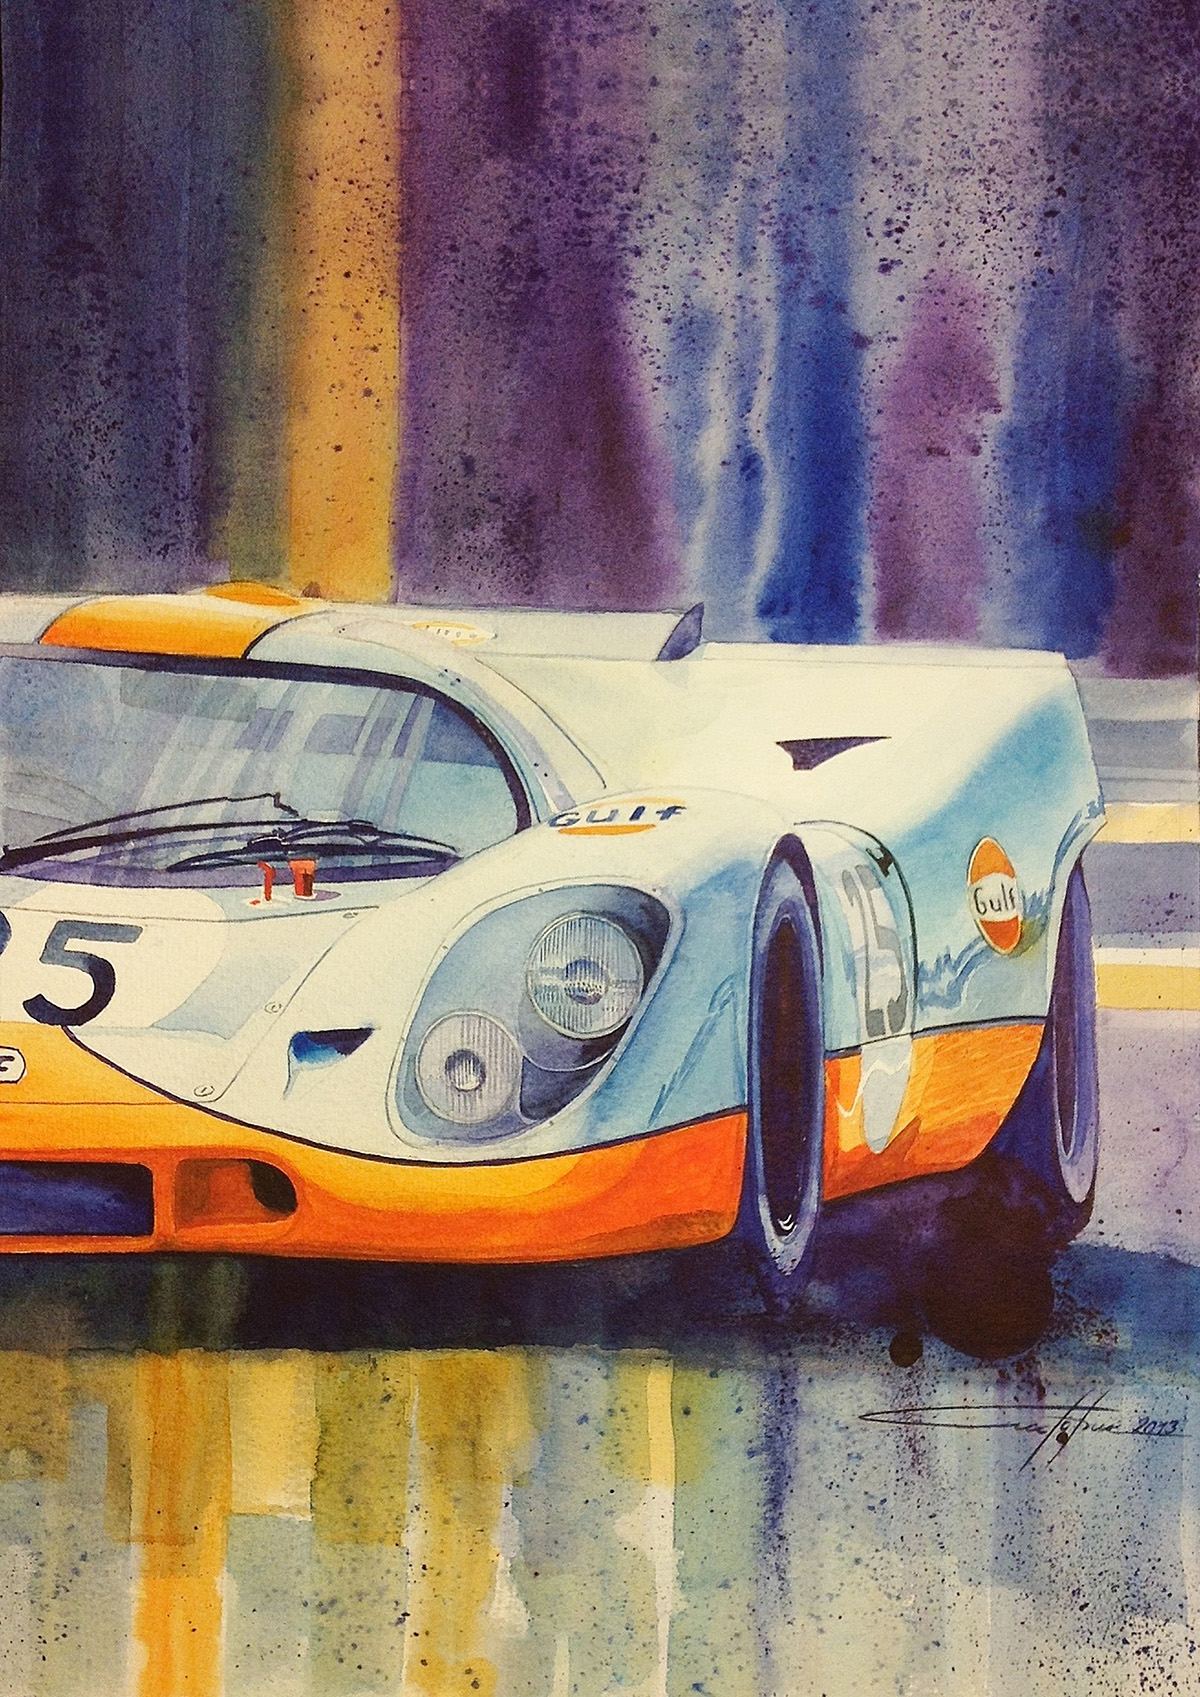 Start your engines! 3..2..1.. (Water colour art works)